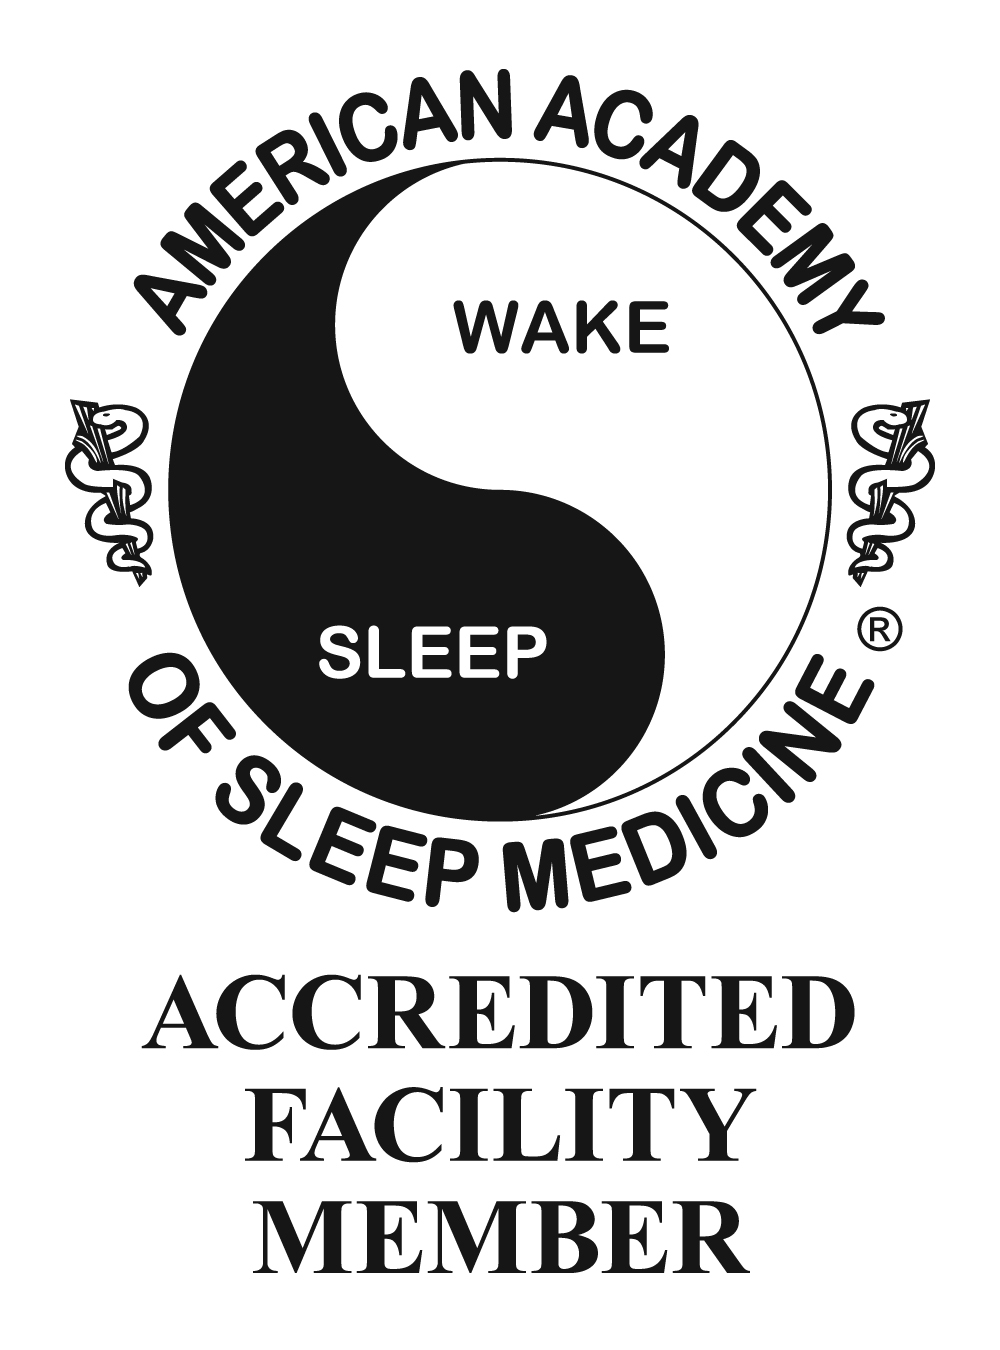 American Academy of Sleep Medicine accreditation